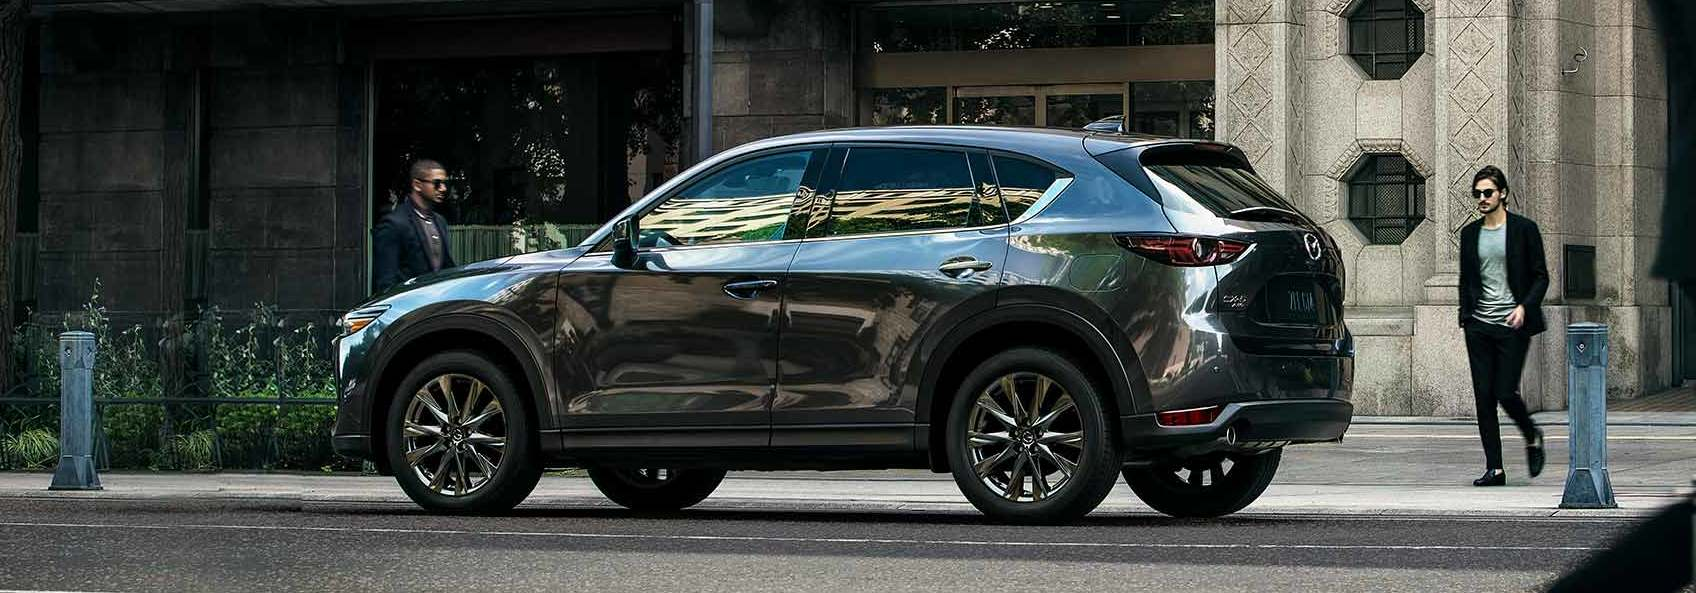 2019 Mazda CX-5 Technology Features in Wantagh, NY